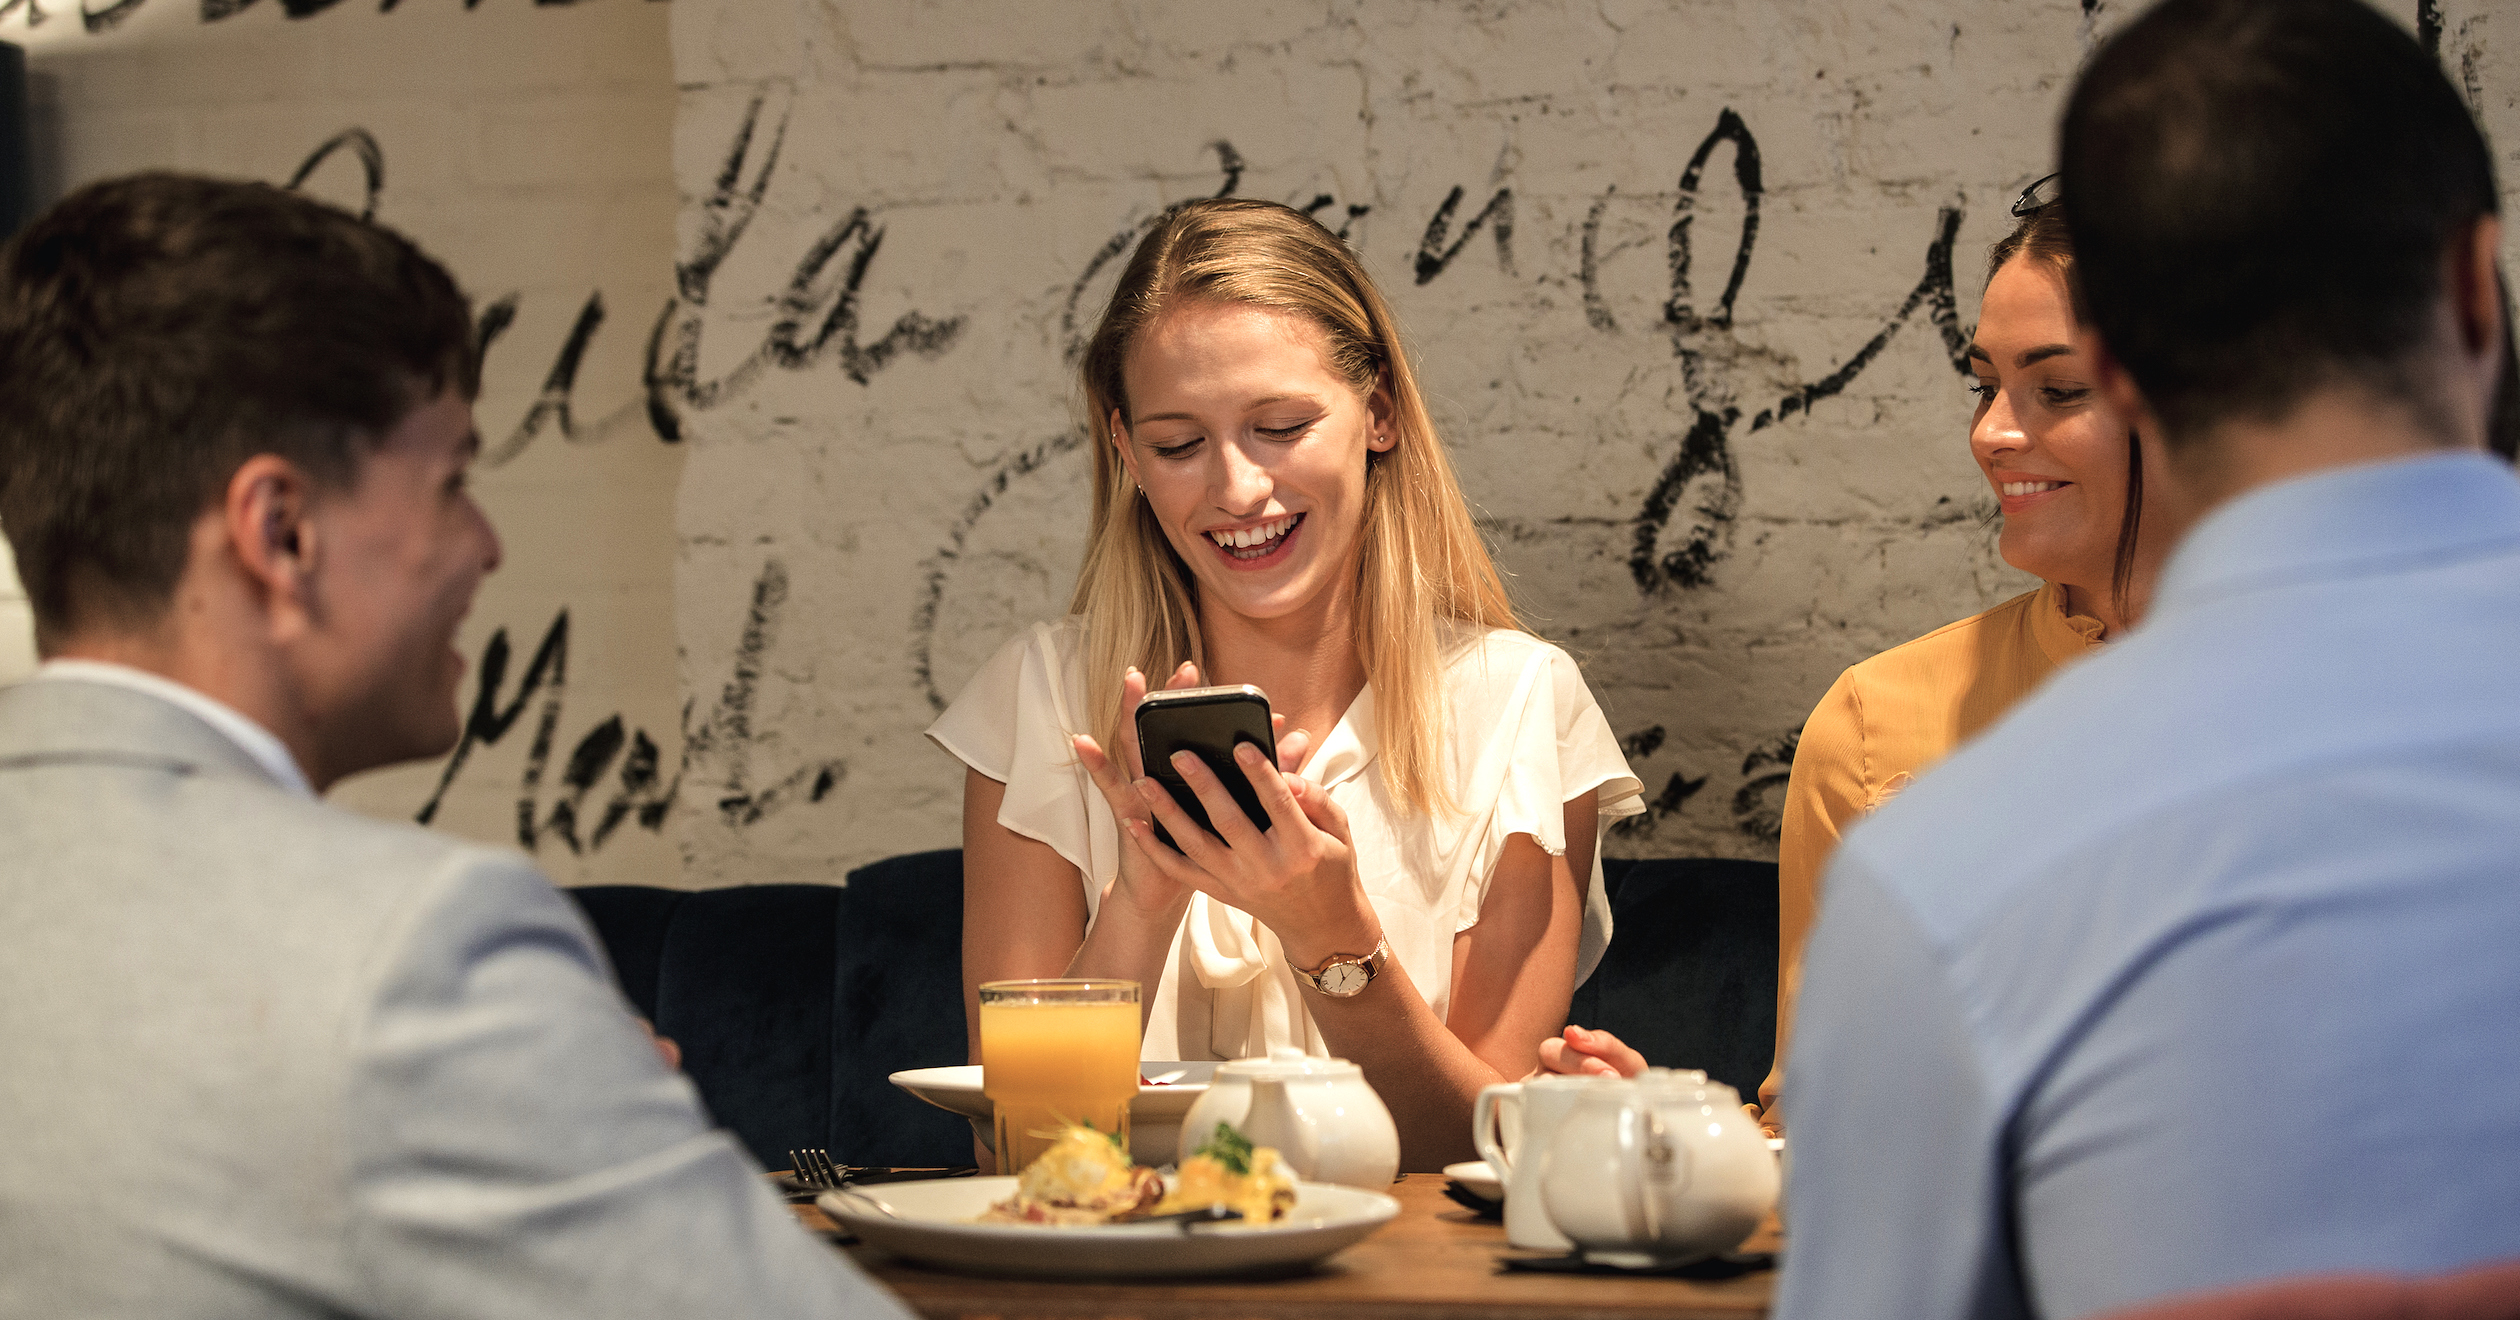 Women using phone at dinner with friends